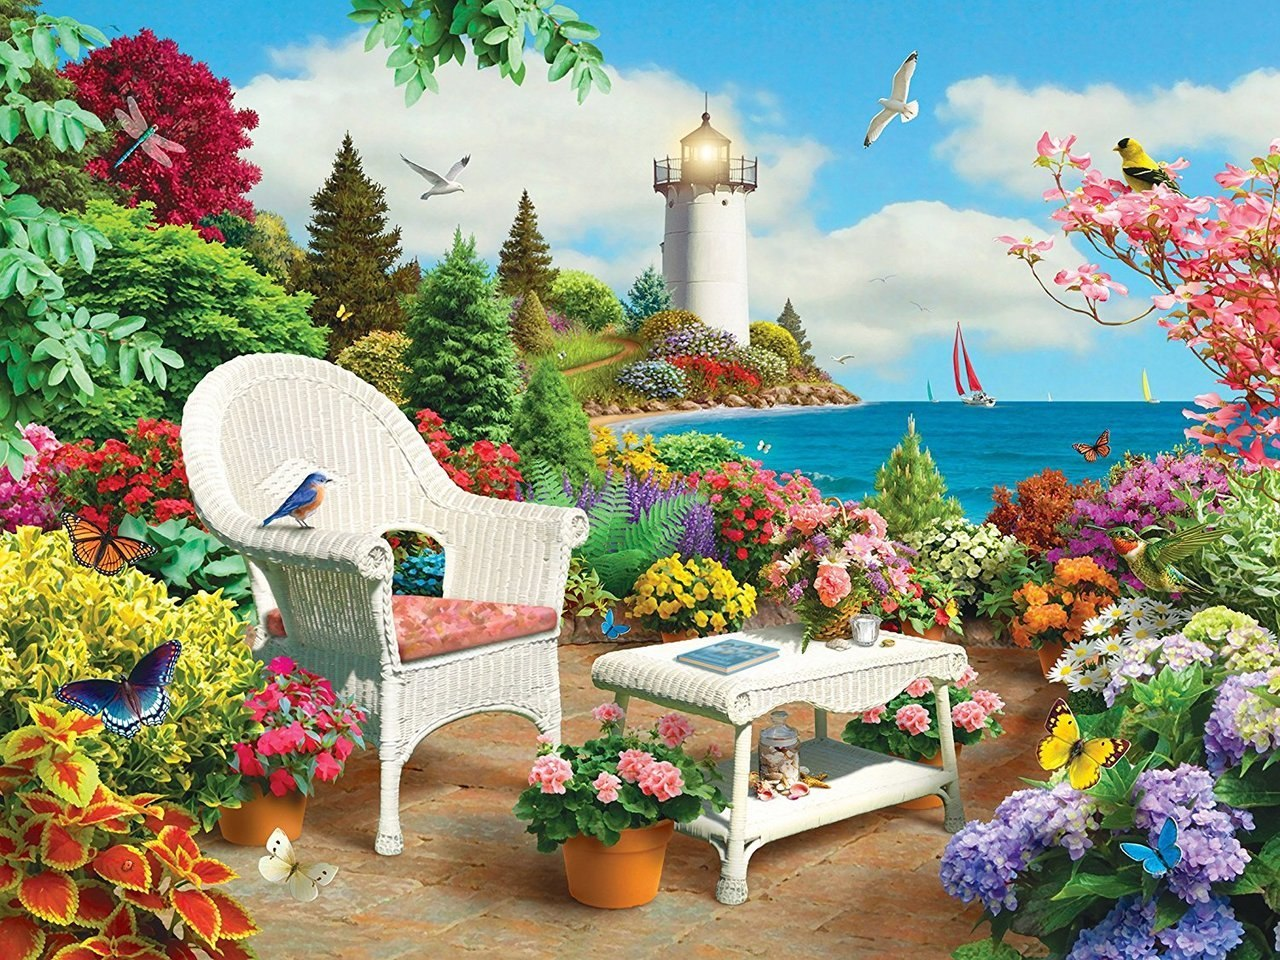 Lazy Days: Memories - 750pc Jigsaw Puzzle By Masterpieces  			  					NEW - image main